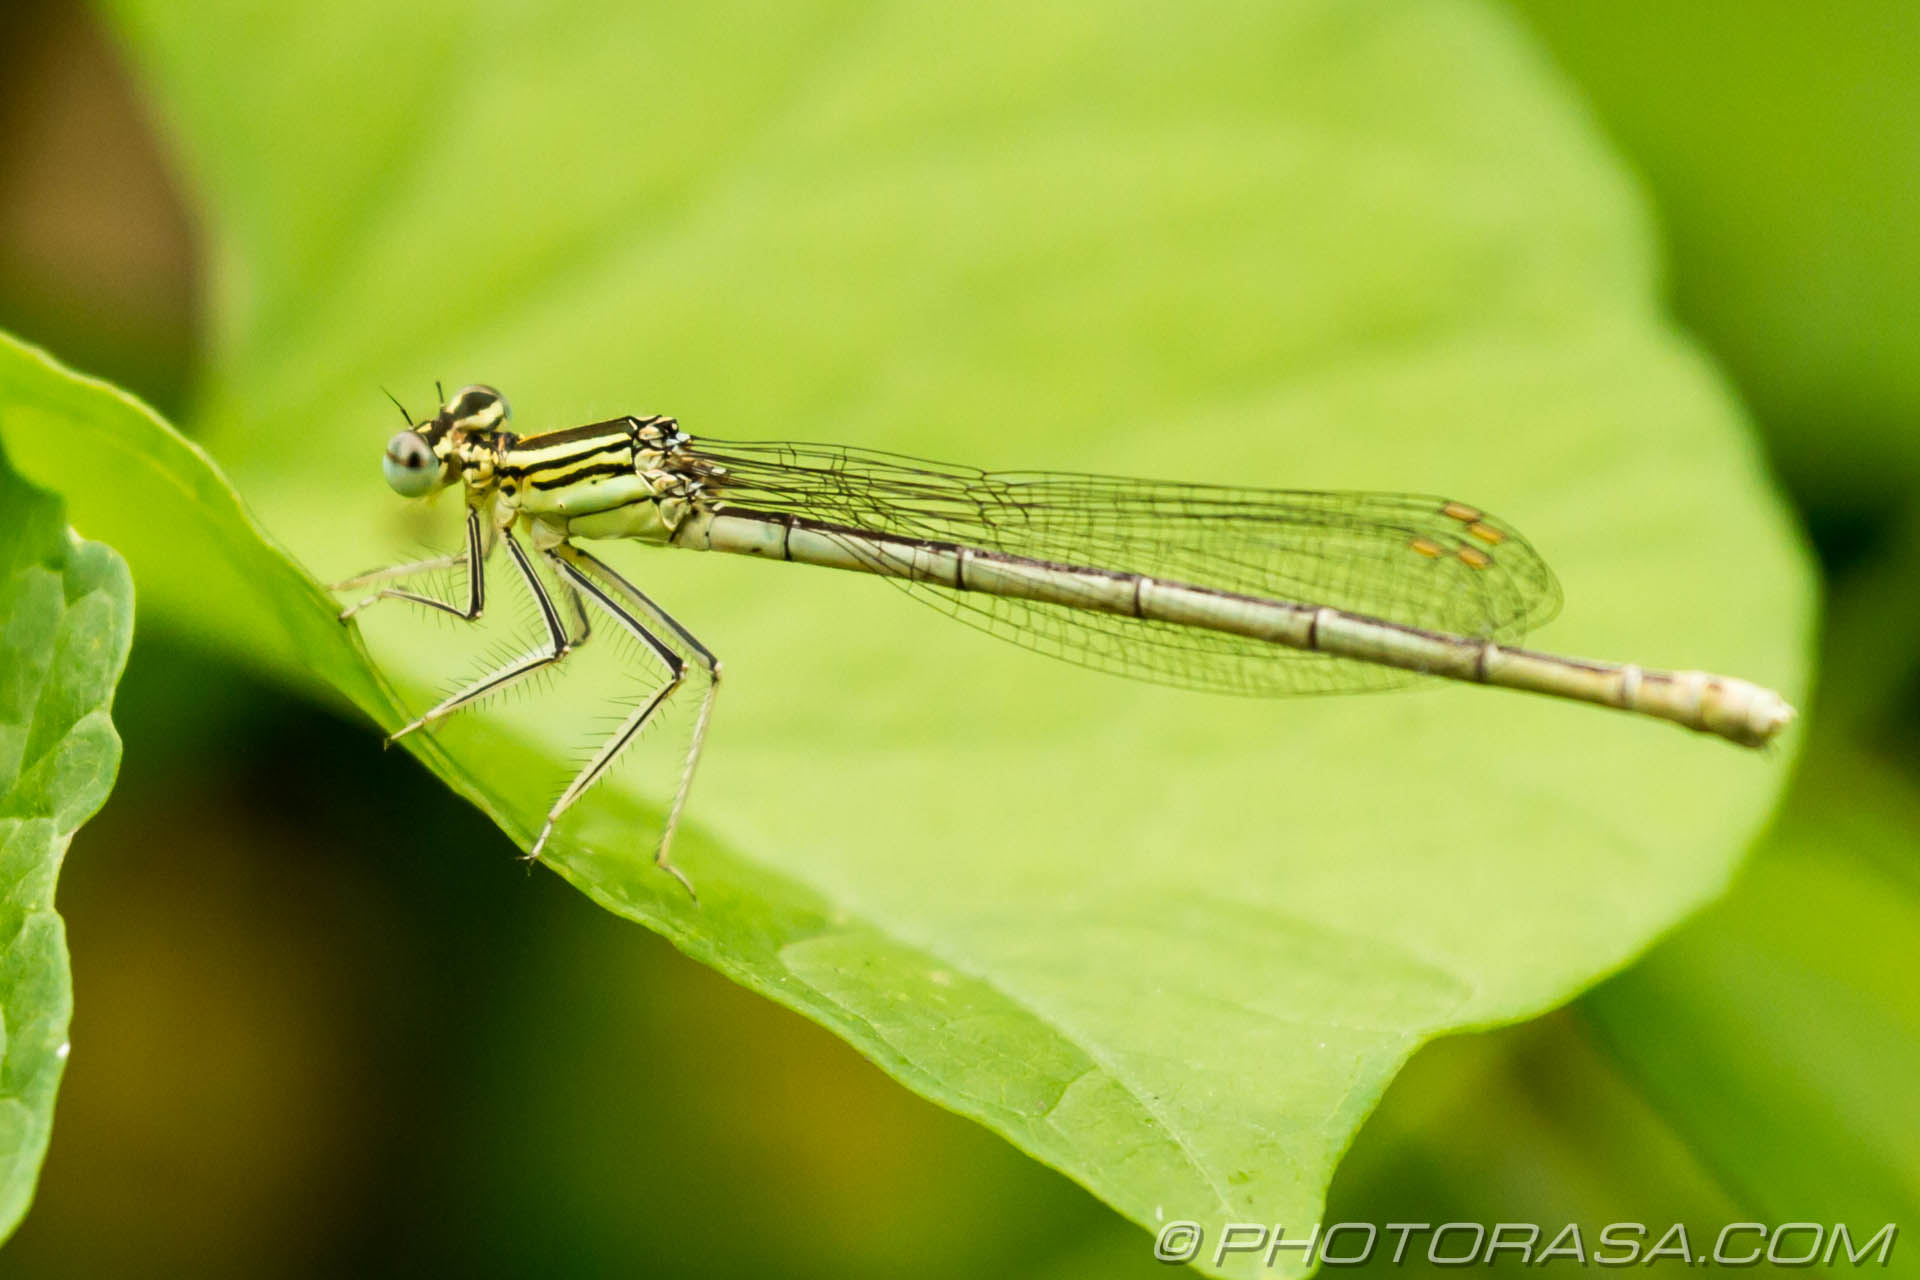 https://photorasa.com/damselflies/white-legged-damsel-fly/